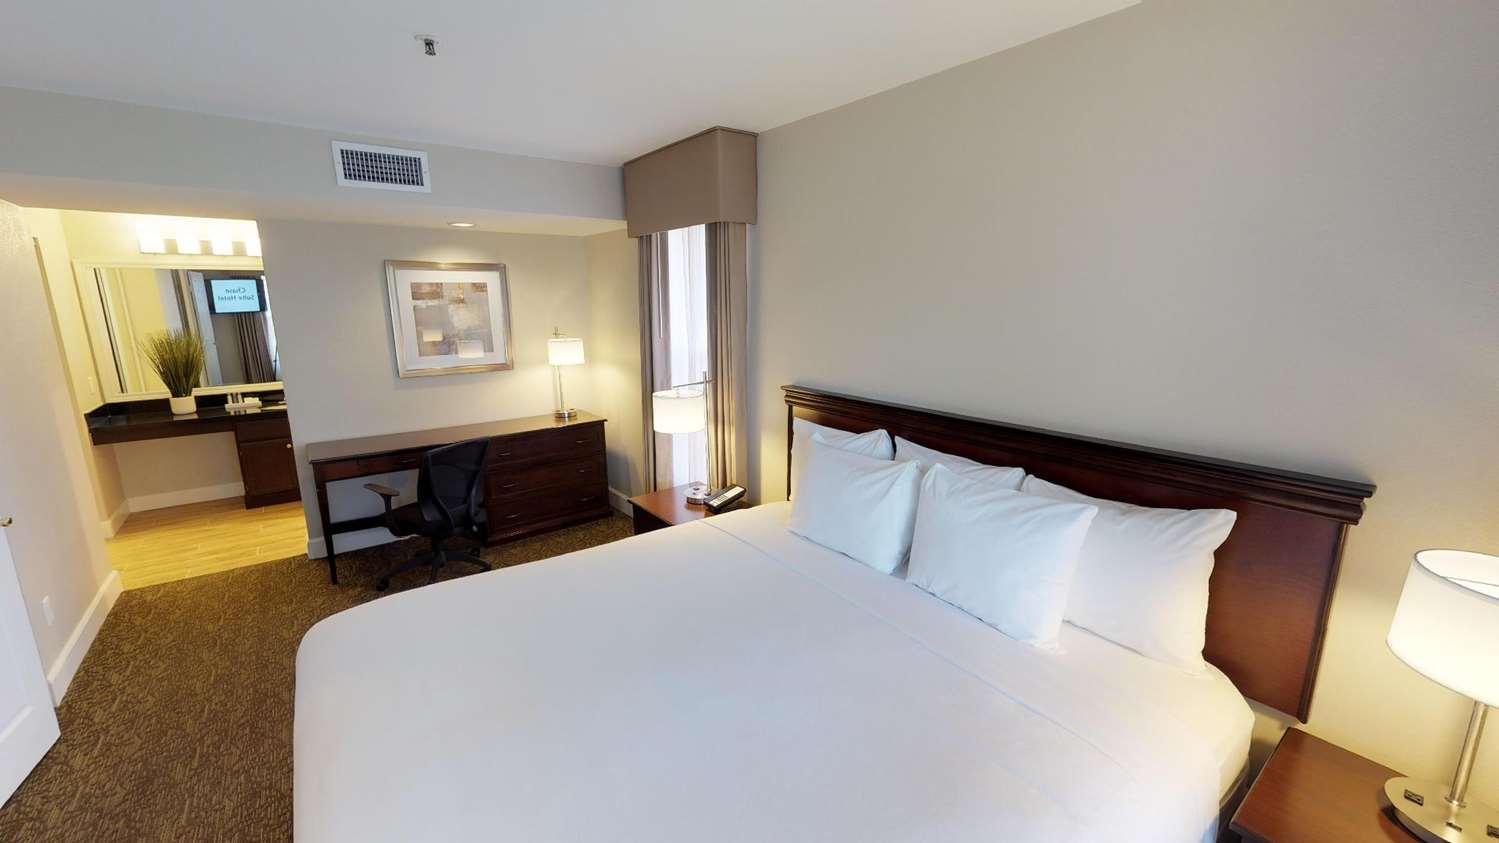 Room - Chase Suite Hotel Brea